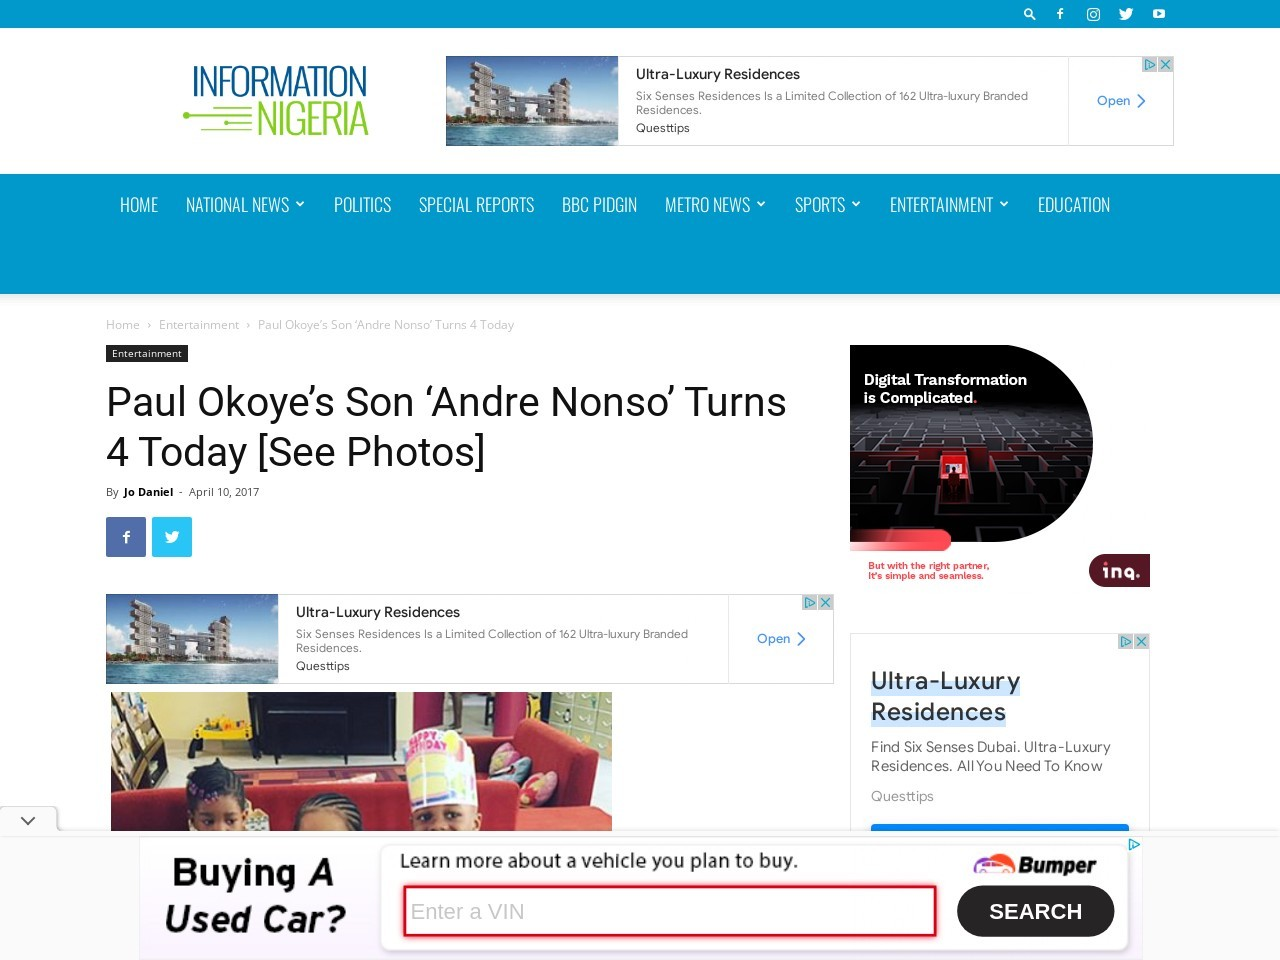 Paul Okoye's Son 'Andre Nonso' Turns 4 Today [See Photos]